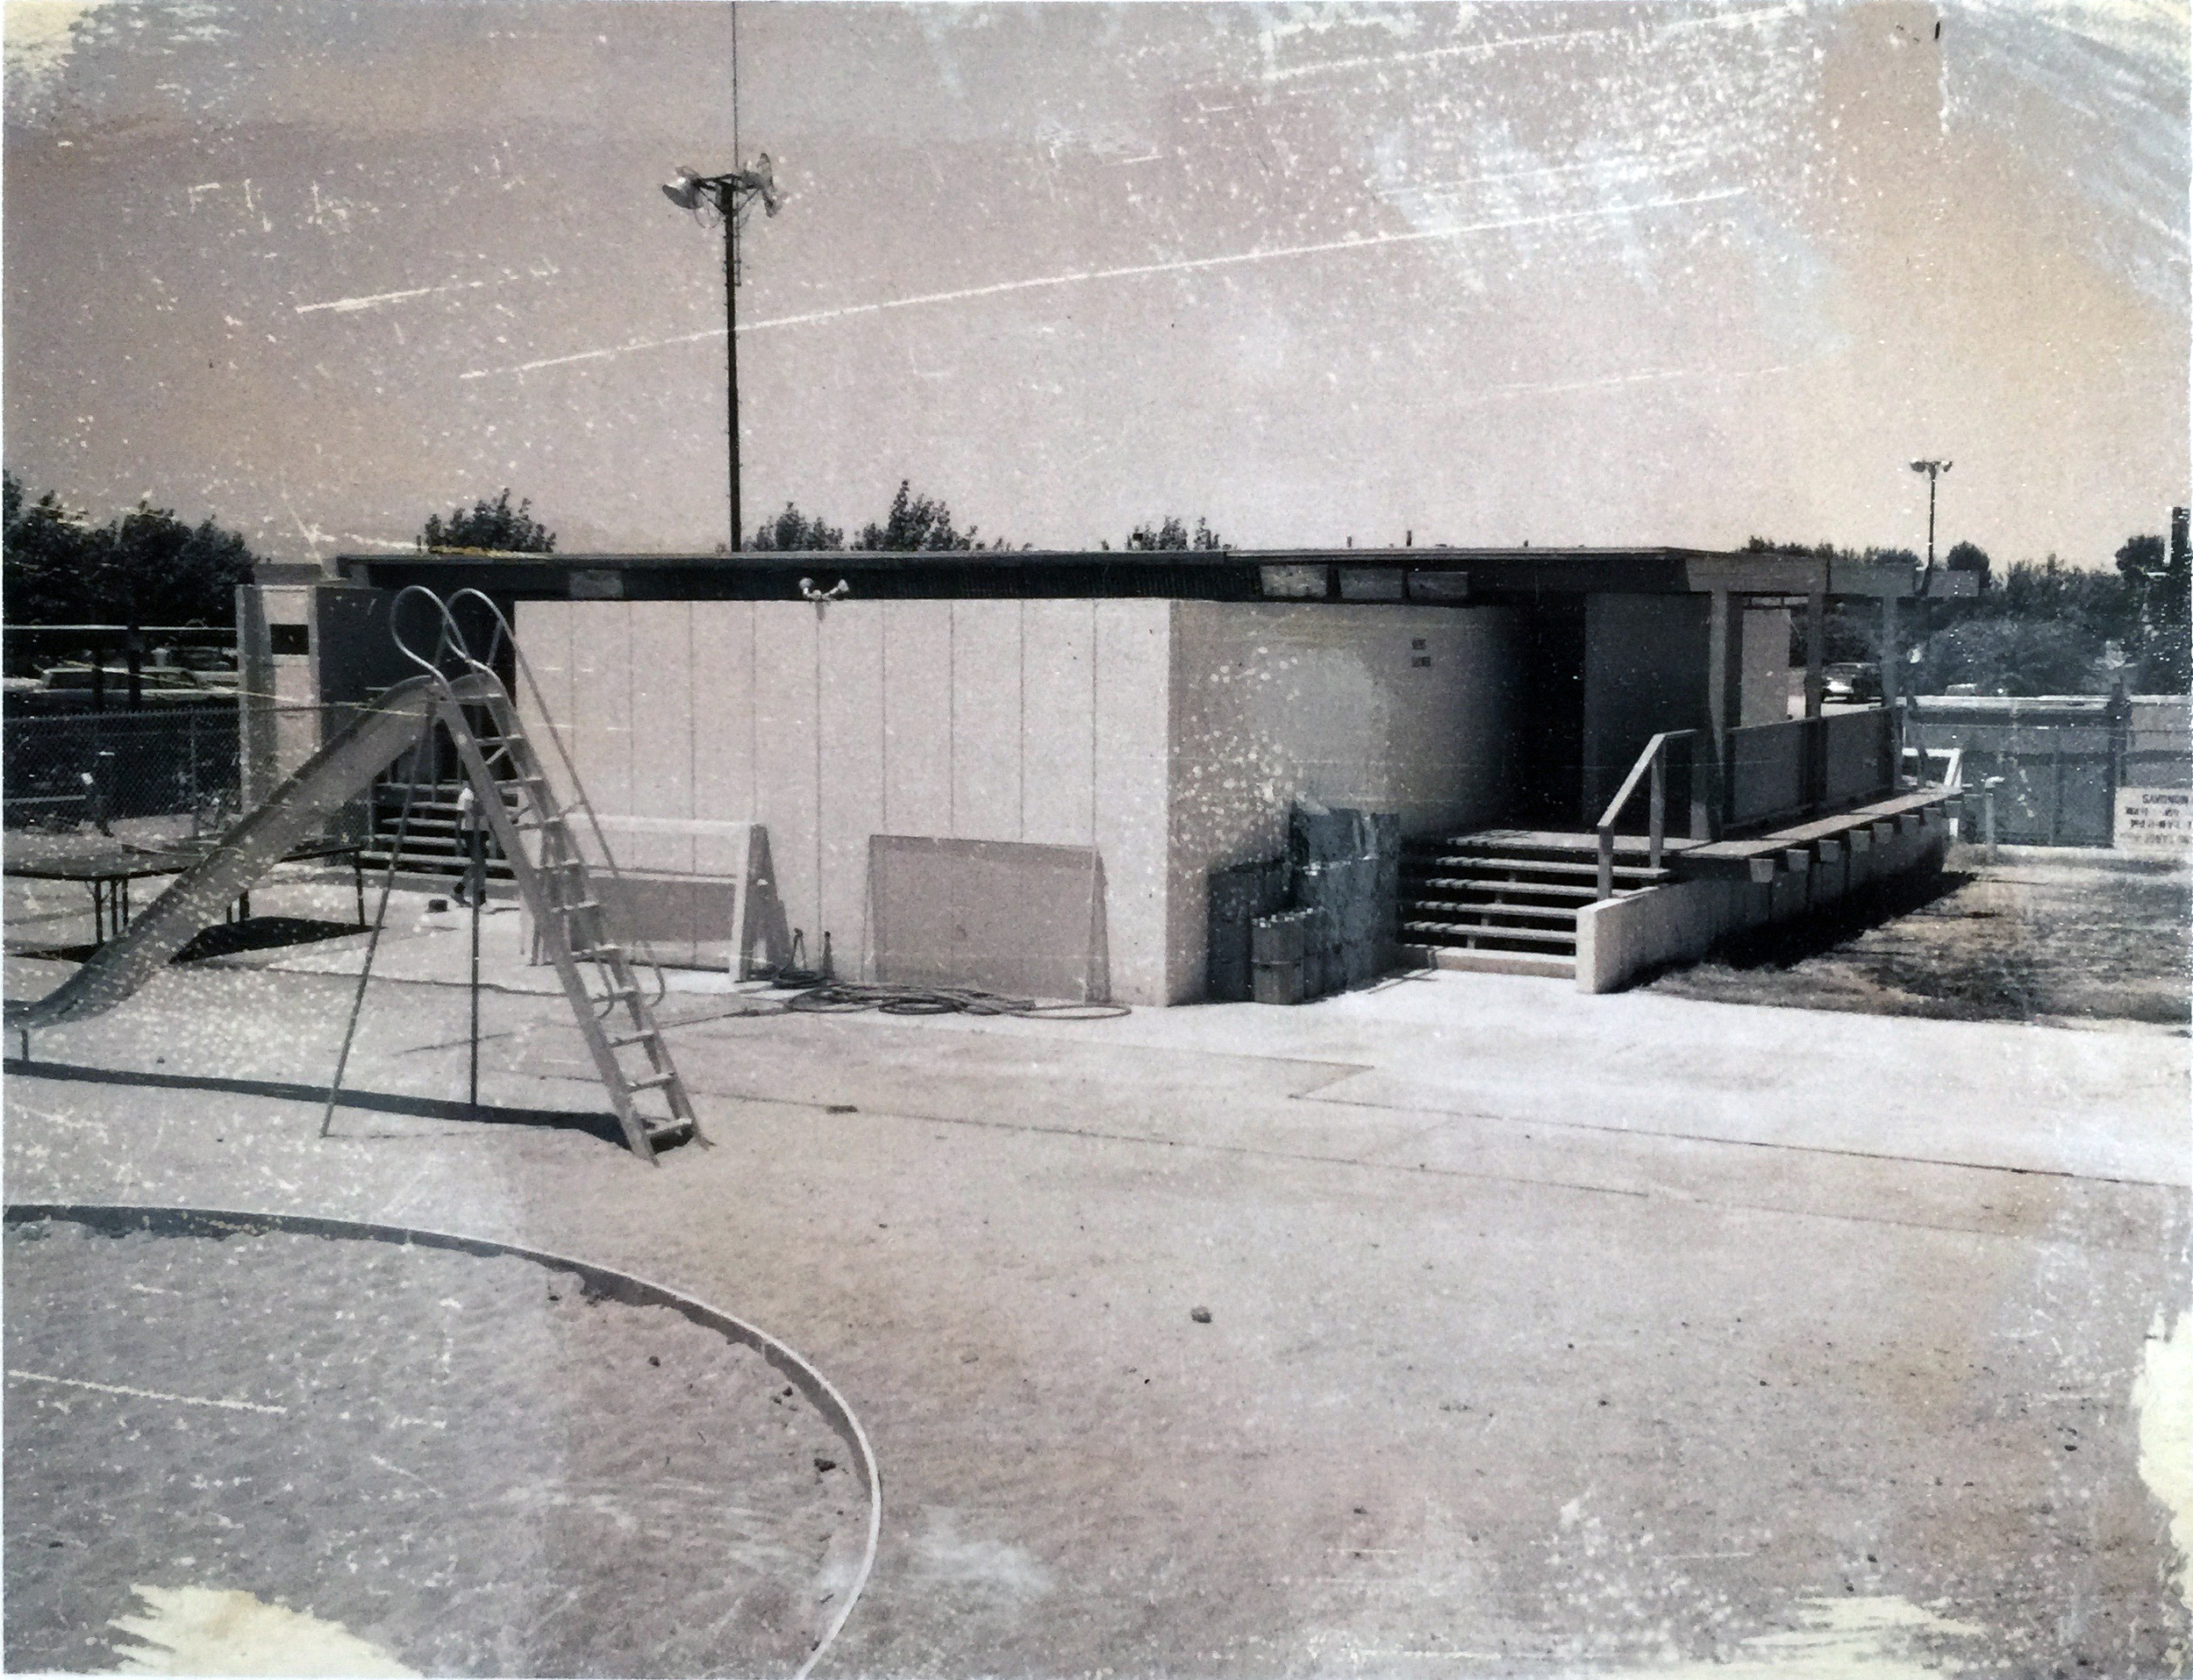 Smith and Williams, Architects and Engineers. Bath House, California City. 1962.Architecture and Design Collection, University Art Museum, UCSB.